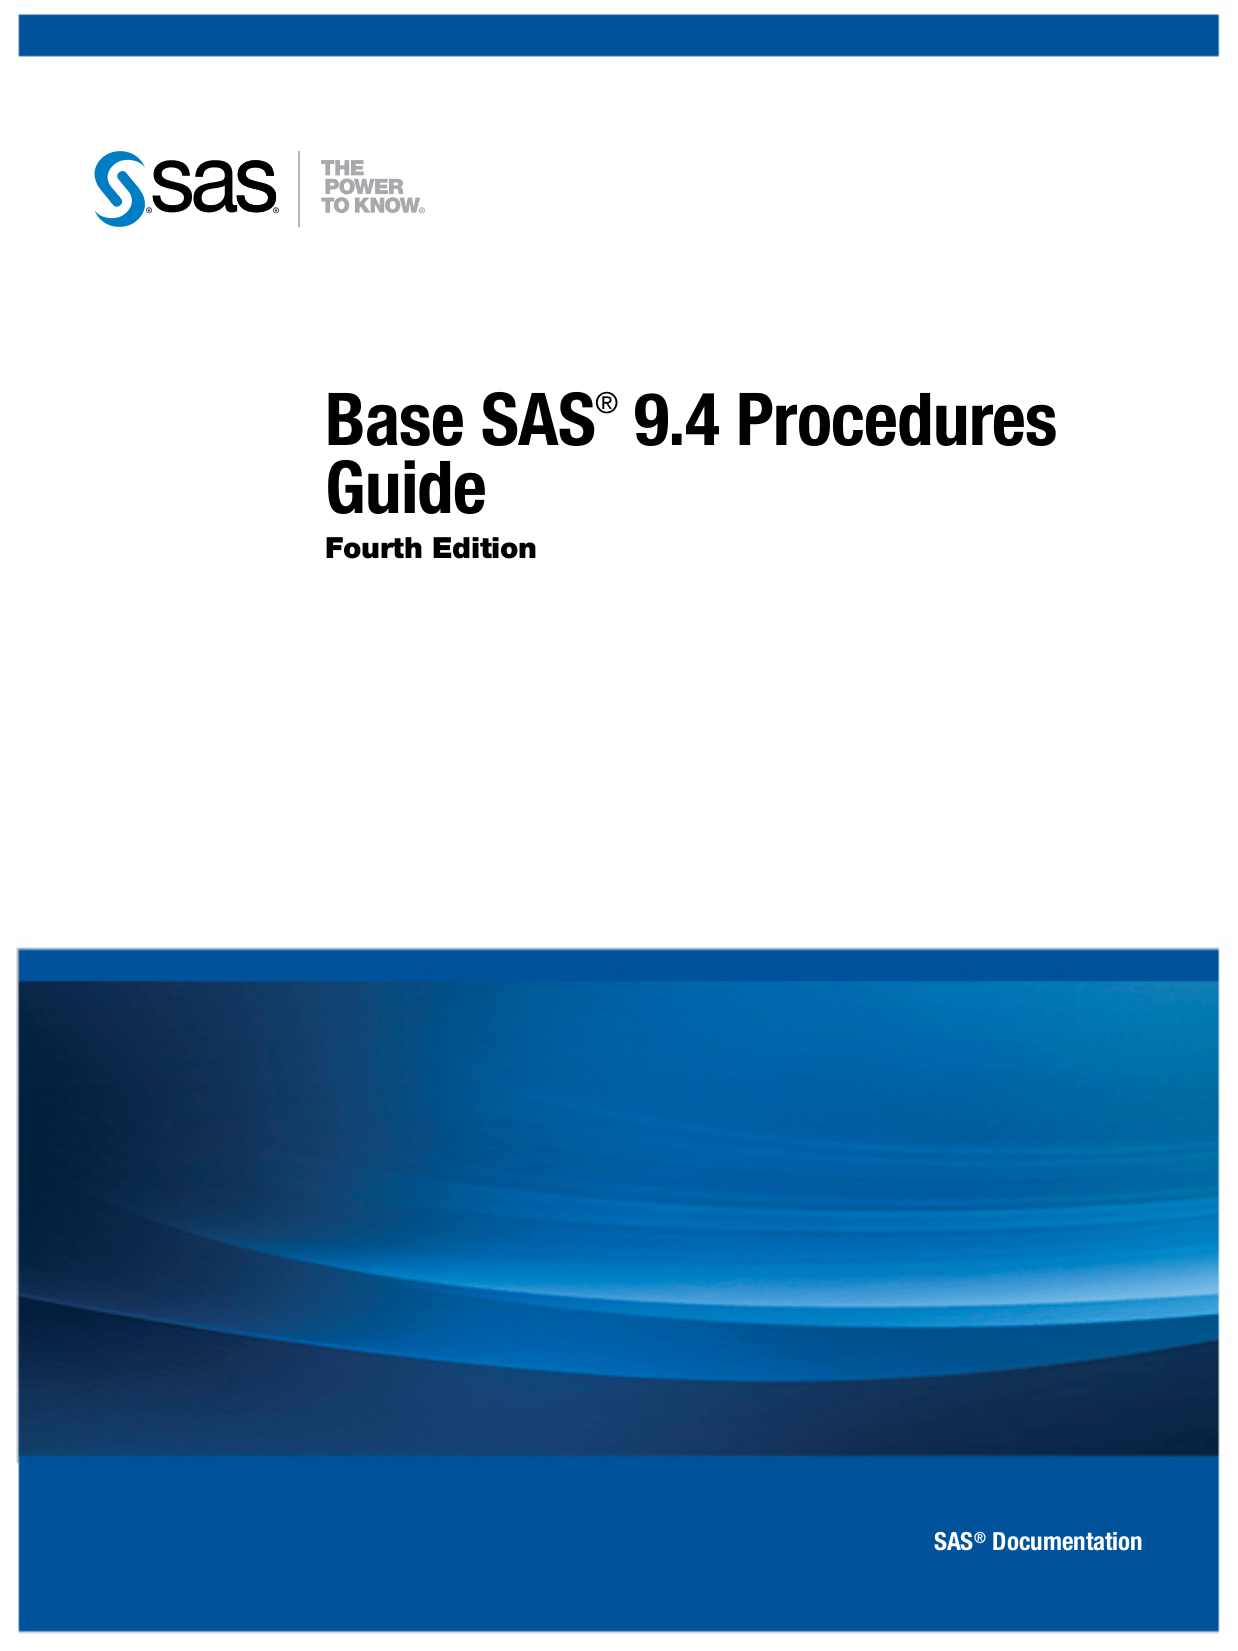 configuring sas enterprise guide 4 3 Sas 94 runs on the professional, ultimate, and enterprise versions of windows 7 and the pro and enterprise versions of windows 8 and windows 81 determine if your computer is running a 32-bit or 64-bit version of the operating system.